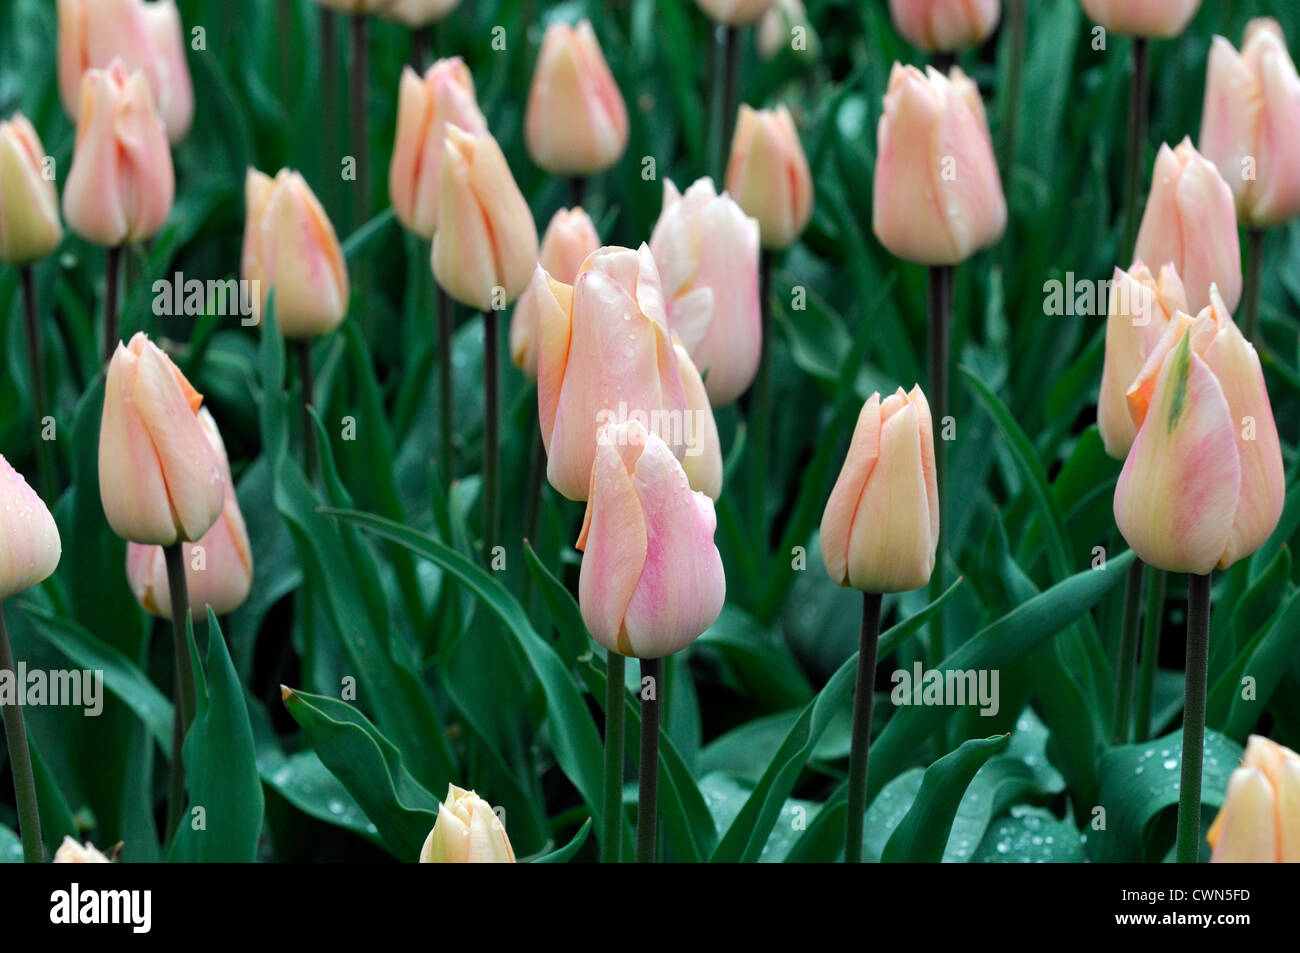 Tulipa apricot beauty triumph tulip flowers display spring flower bloom blossom bed colour color bulb - Stock Image